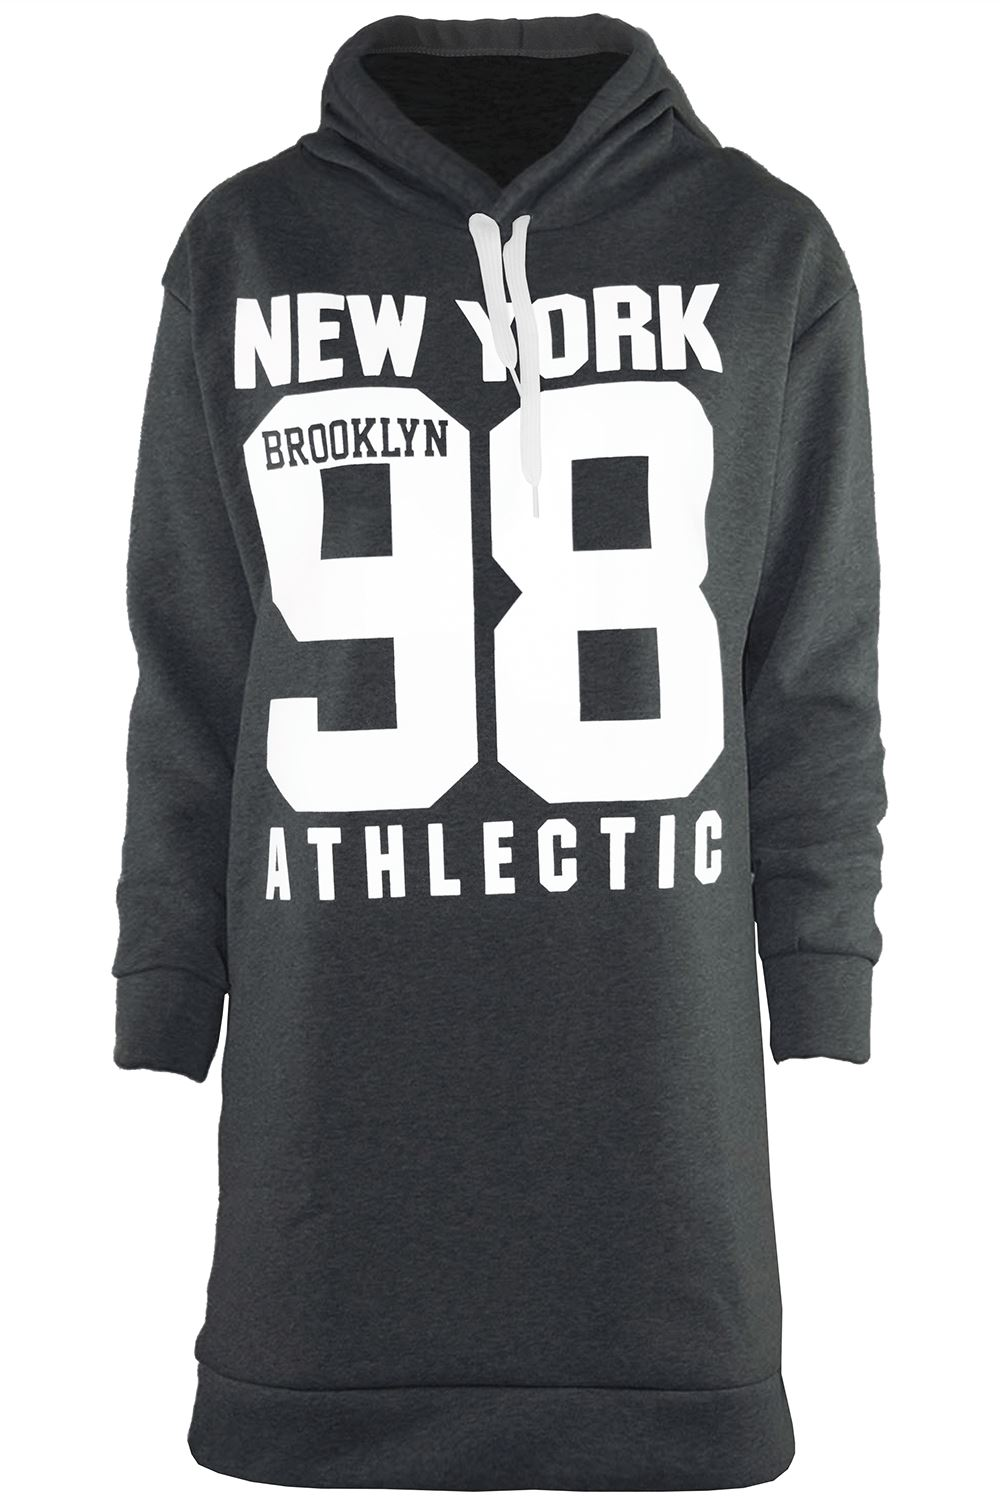 Womens Ladies New York Hooded Fleece Baggy Pullover Jumper Sweatshirt Long Dress